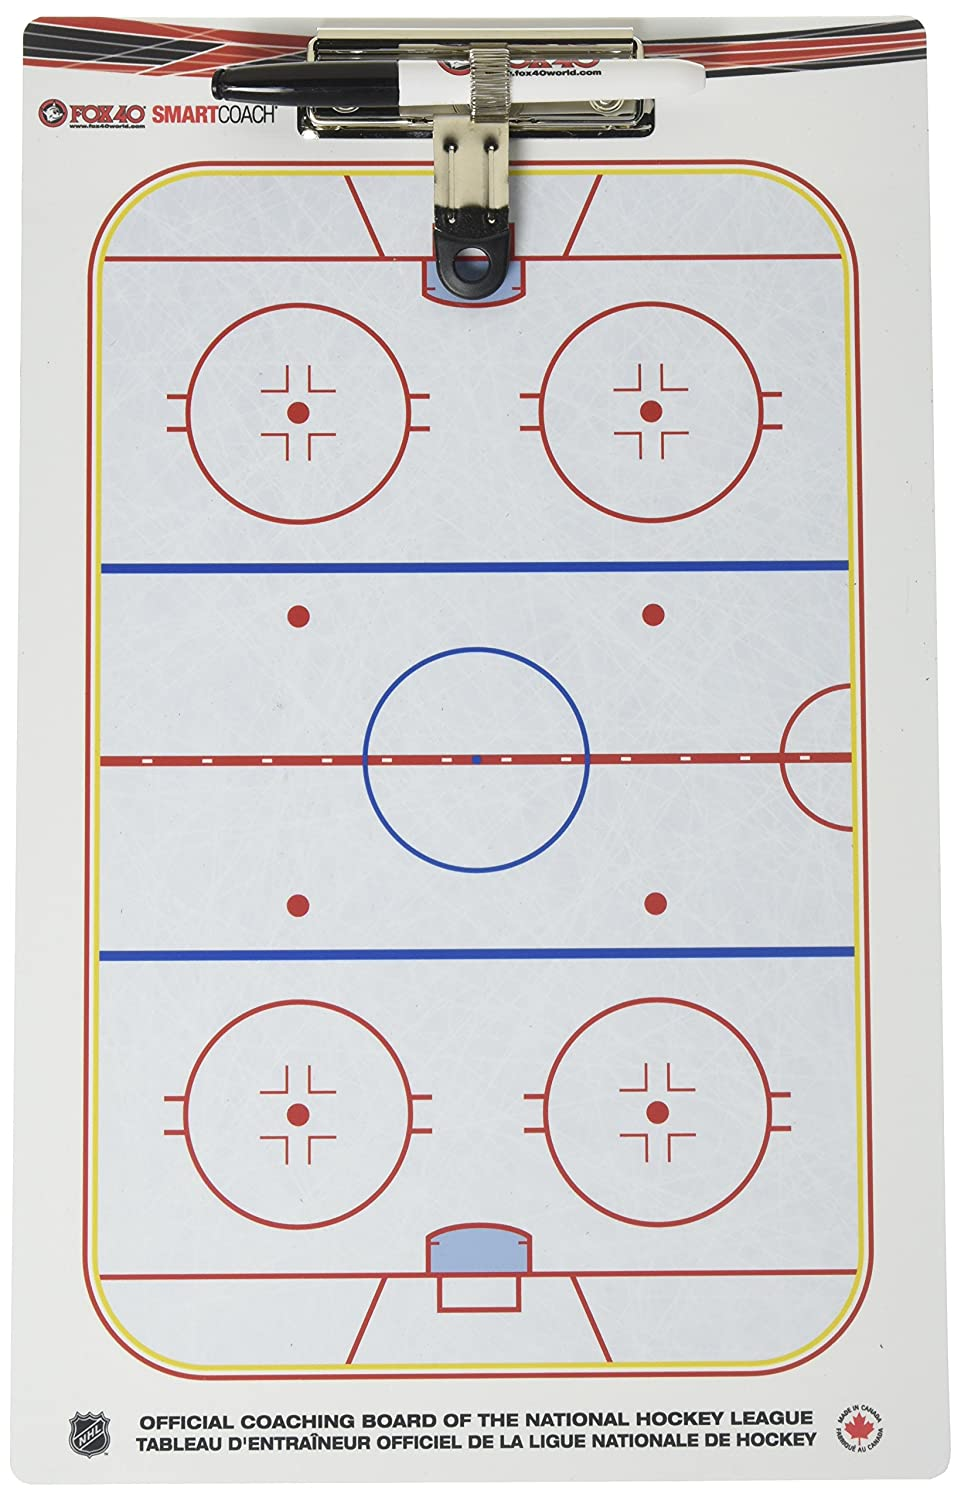 SmartCoach Pro Clipboard - Ice Hockey Fox 40 6920-0400